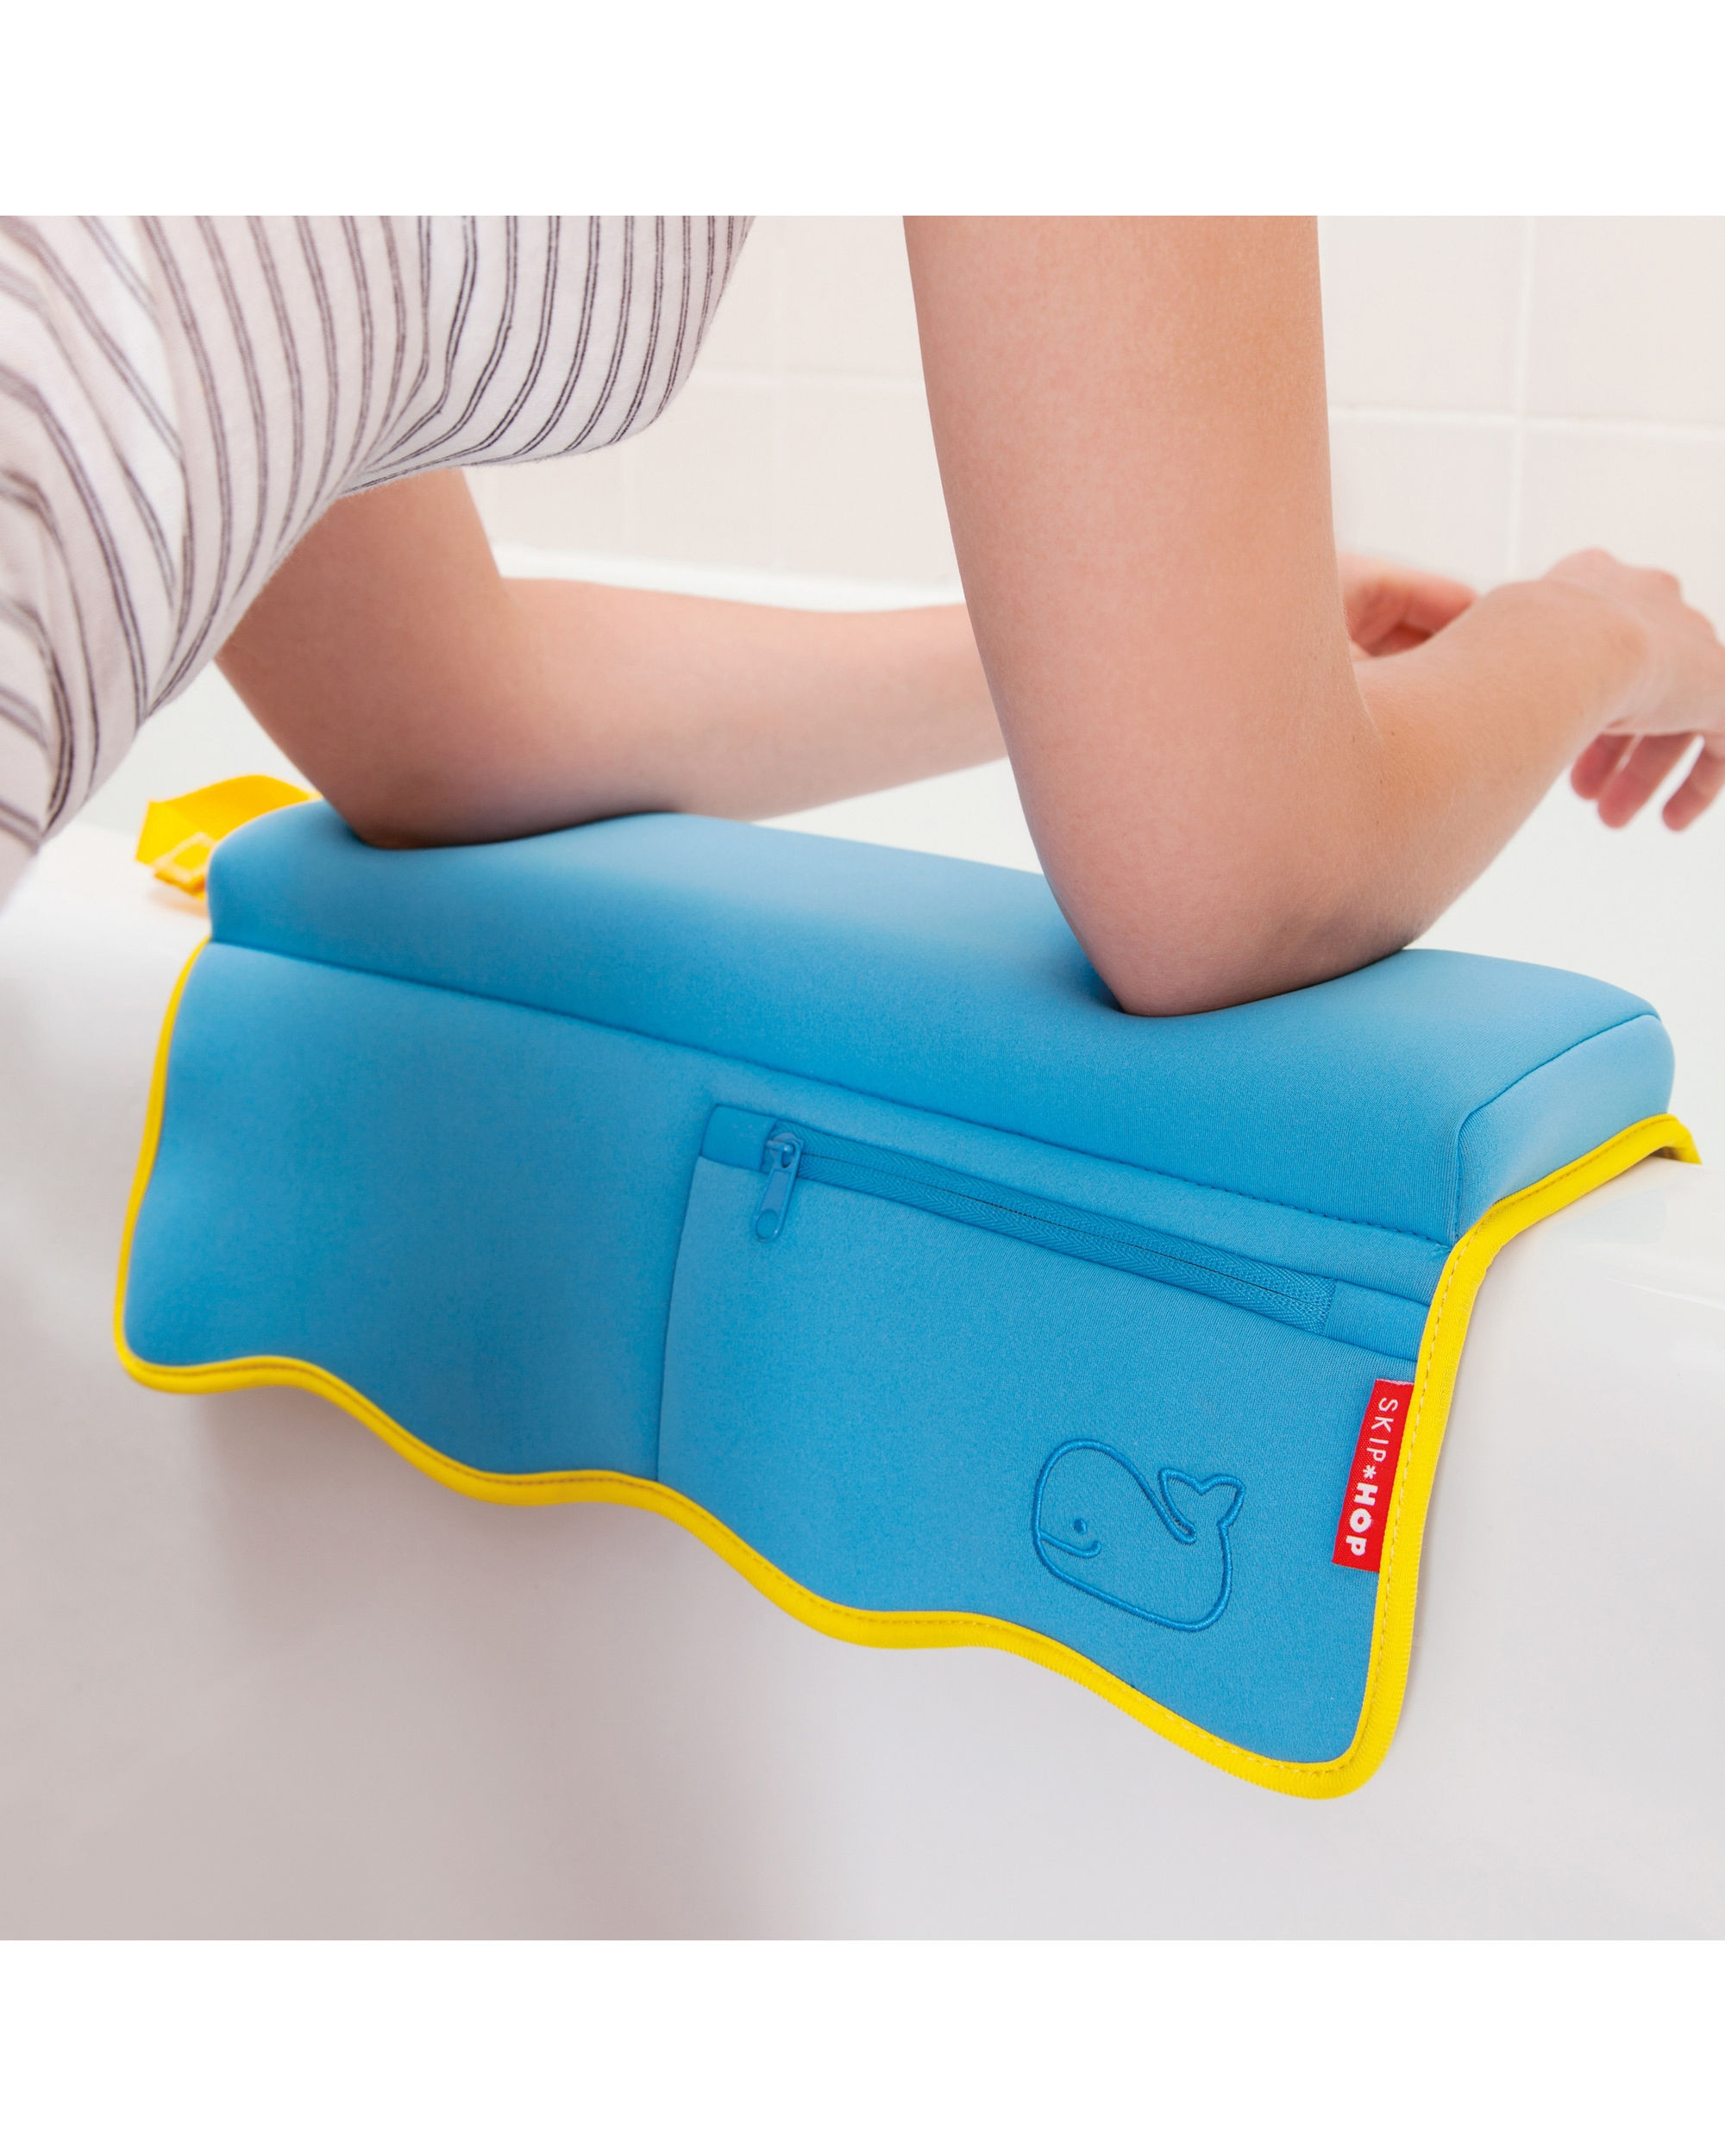 Skip Hop Bathtub Elbow Rest